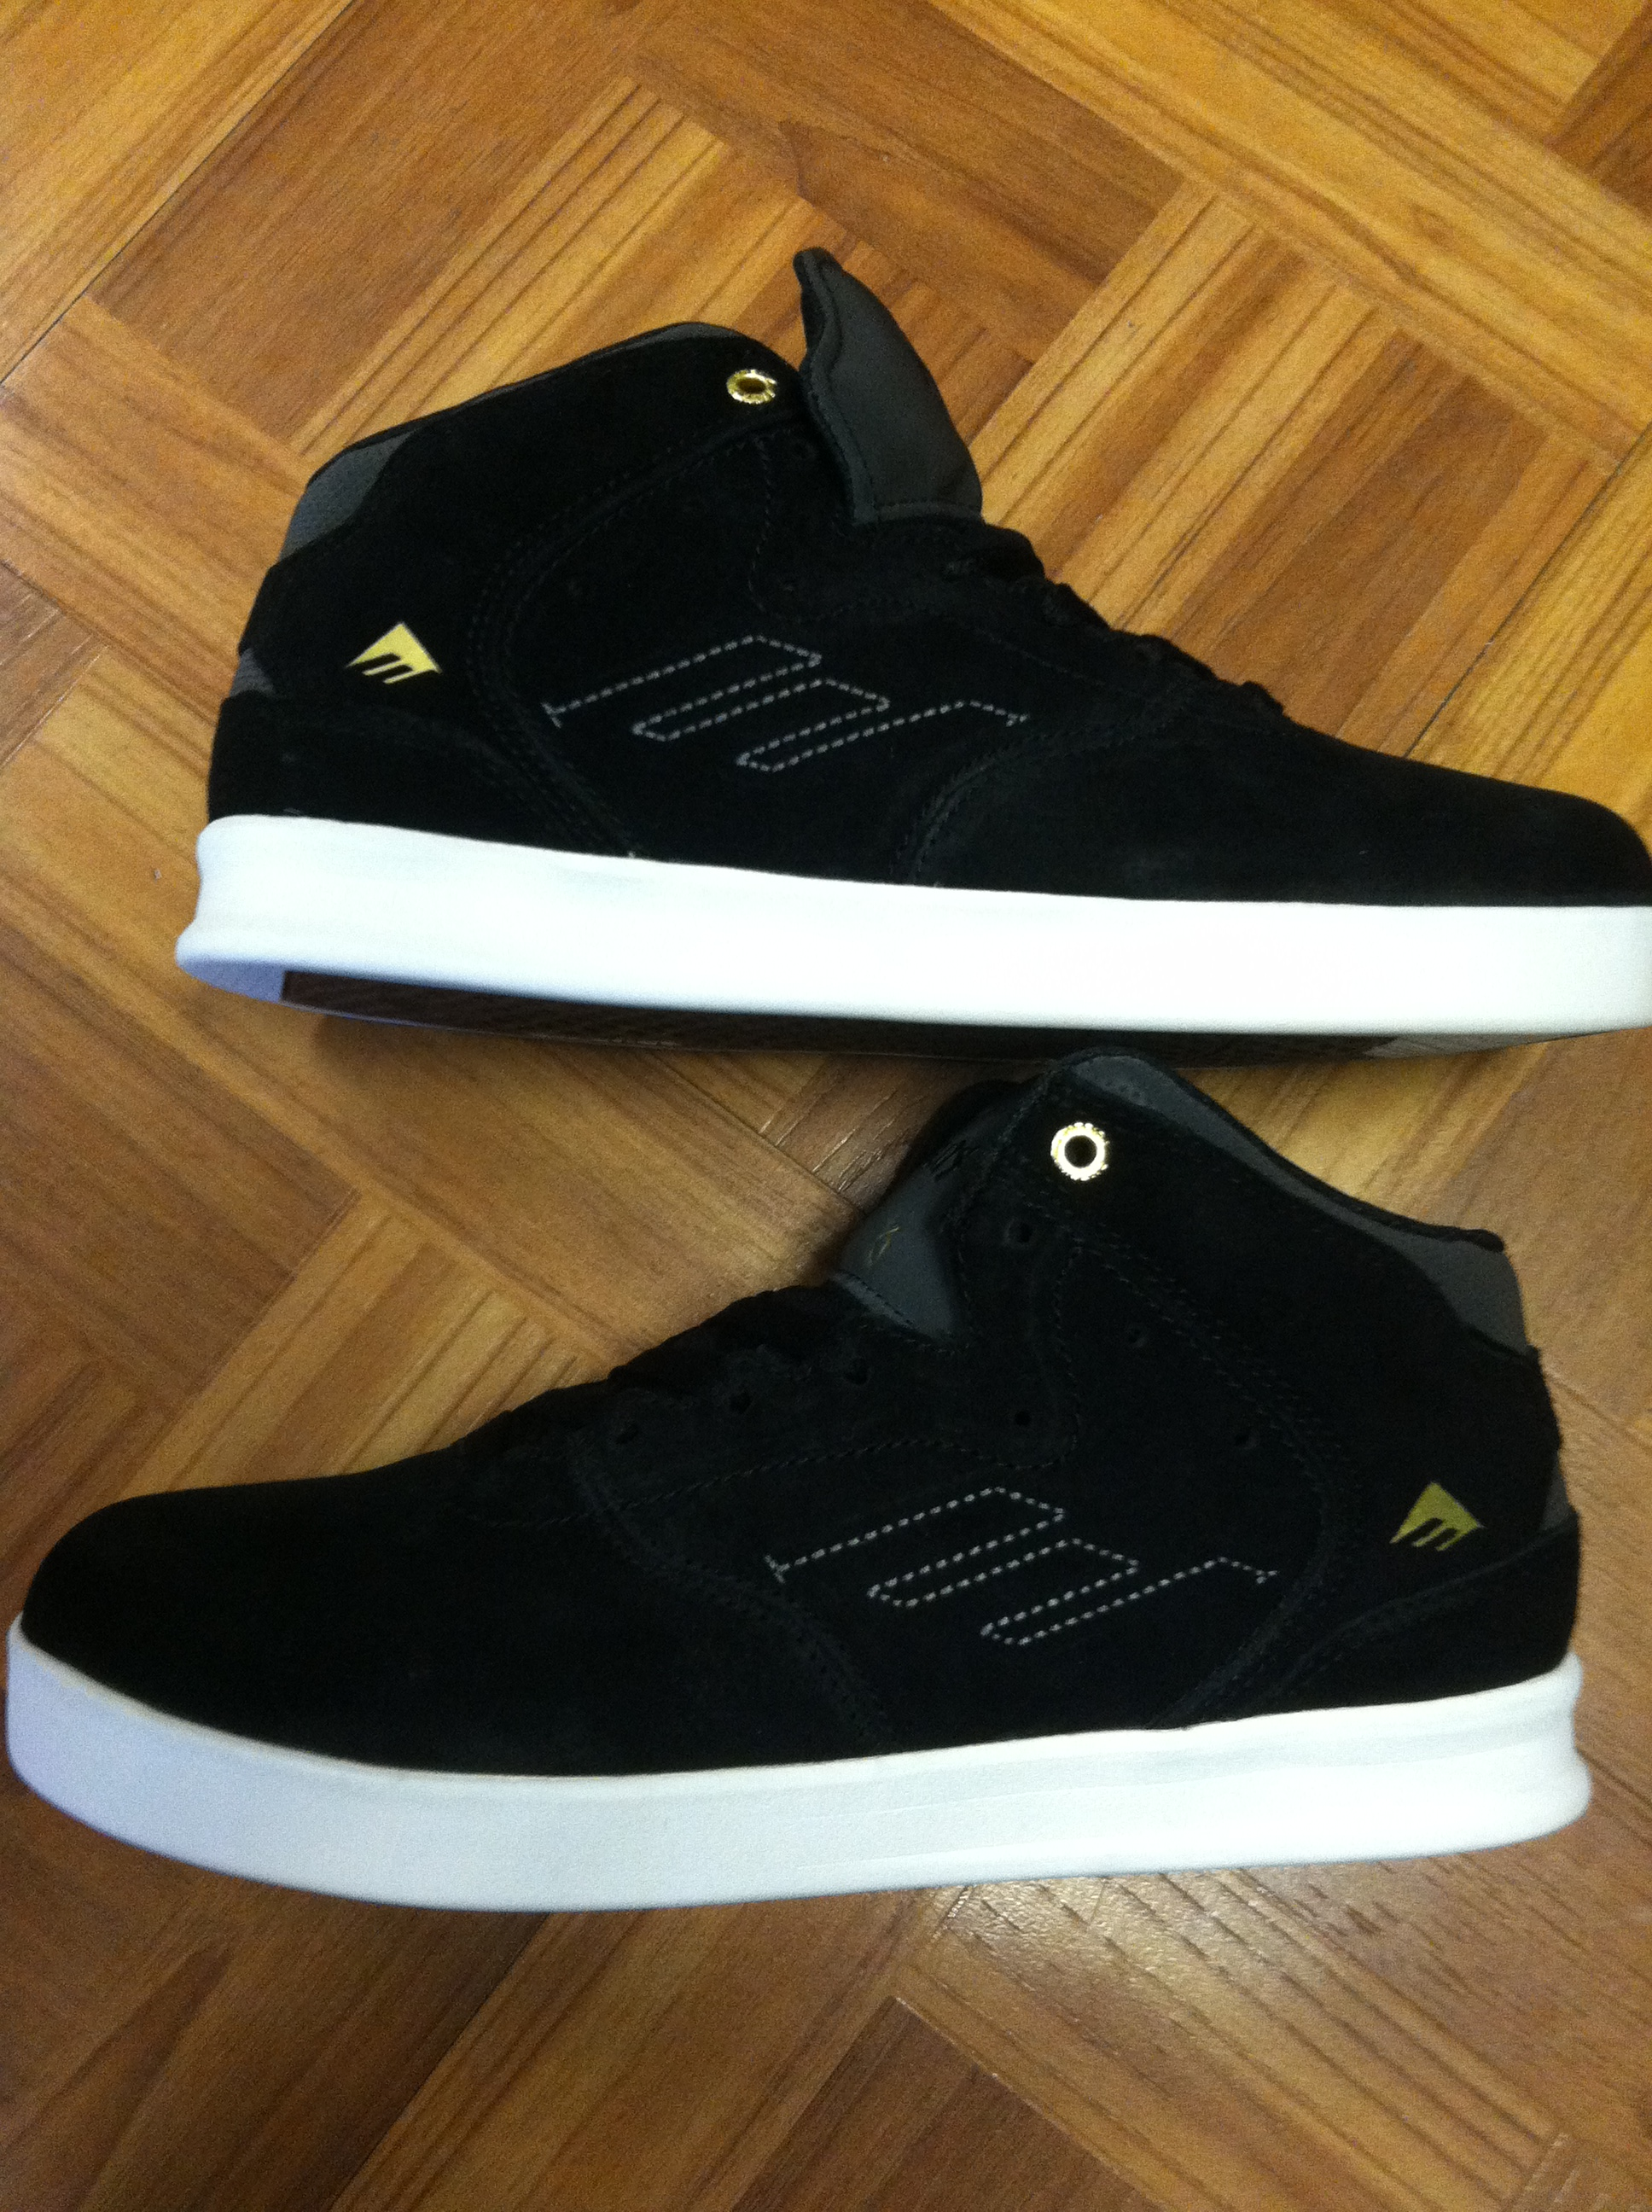 a22a8f178f1 Just Got In The New Emerica Andrew Reynolds 3 Mid Top In Black White ...